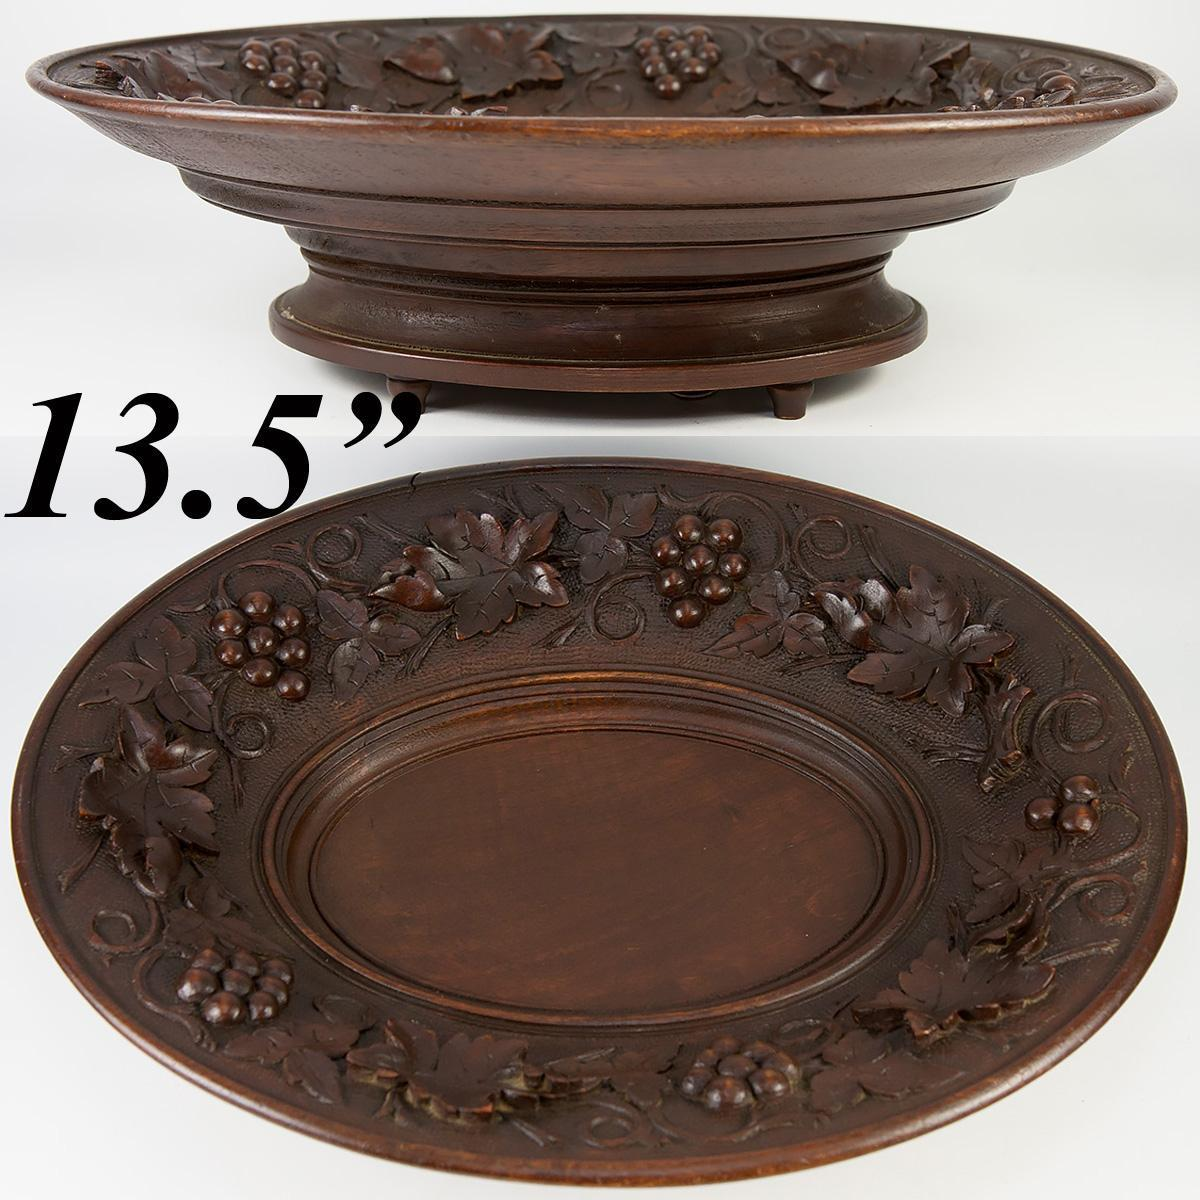 "Antique Hand Carved Black Forest 13.5 x 10.5"" Oval Raised Centerpiece or Fruit Tray, Music Box"